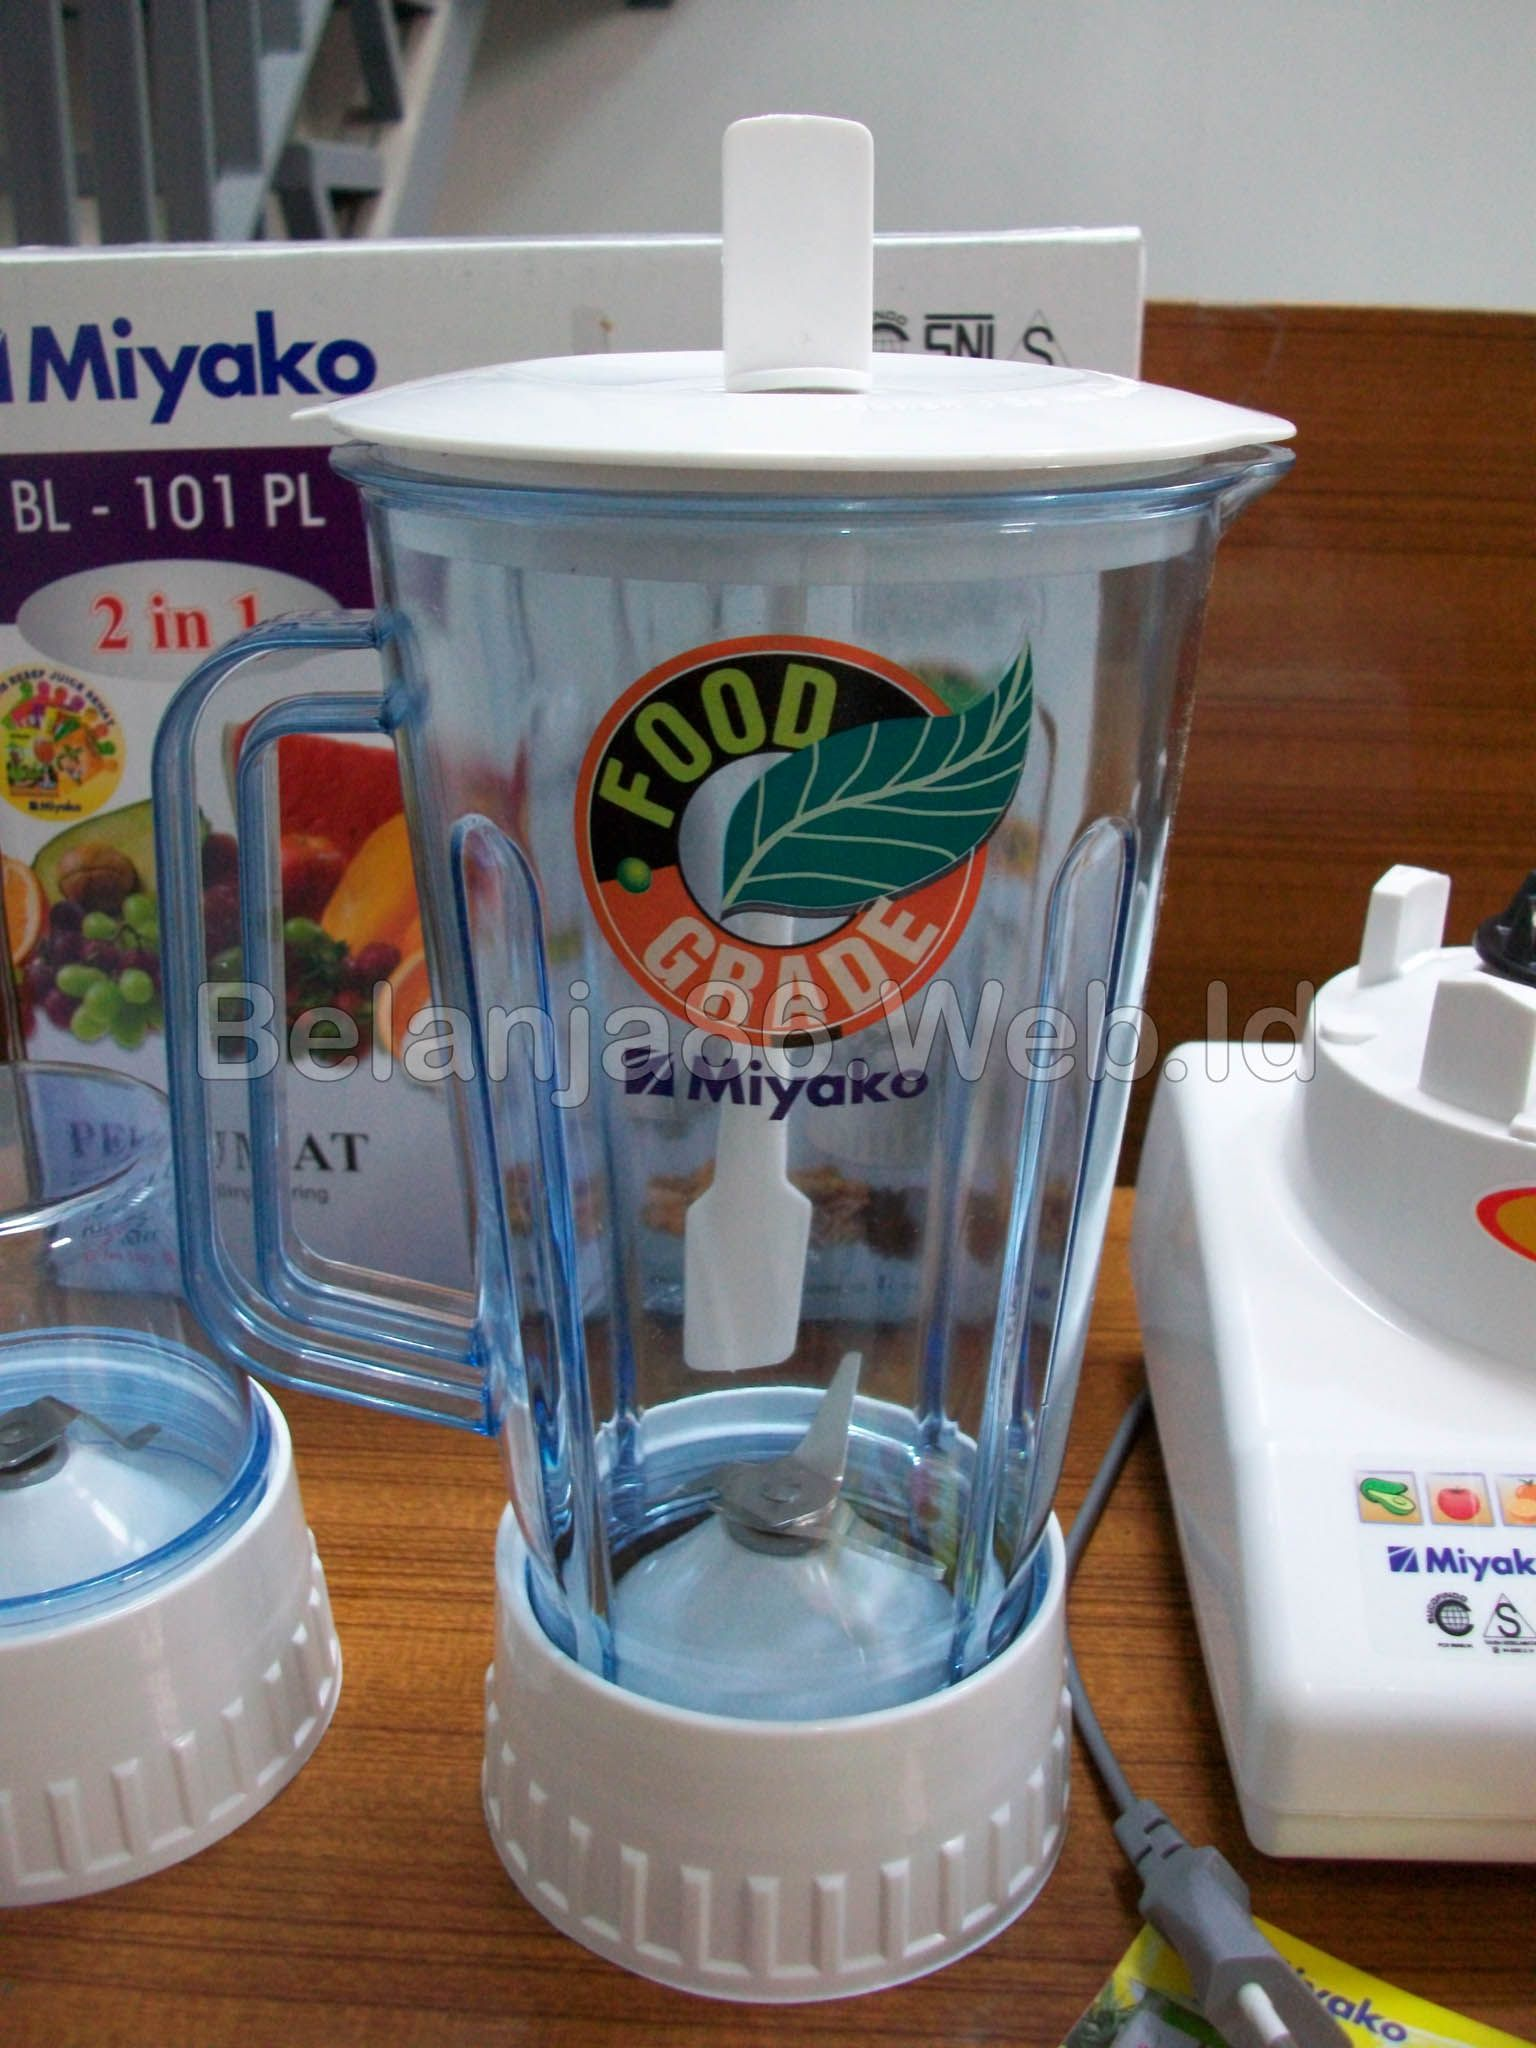 Blender Miyako Bl 101pl 2 In 1 With Dry Mill Other Juicer Hand Mixer Ampamp Stand Hm 620